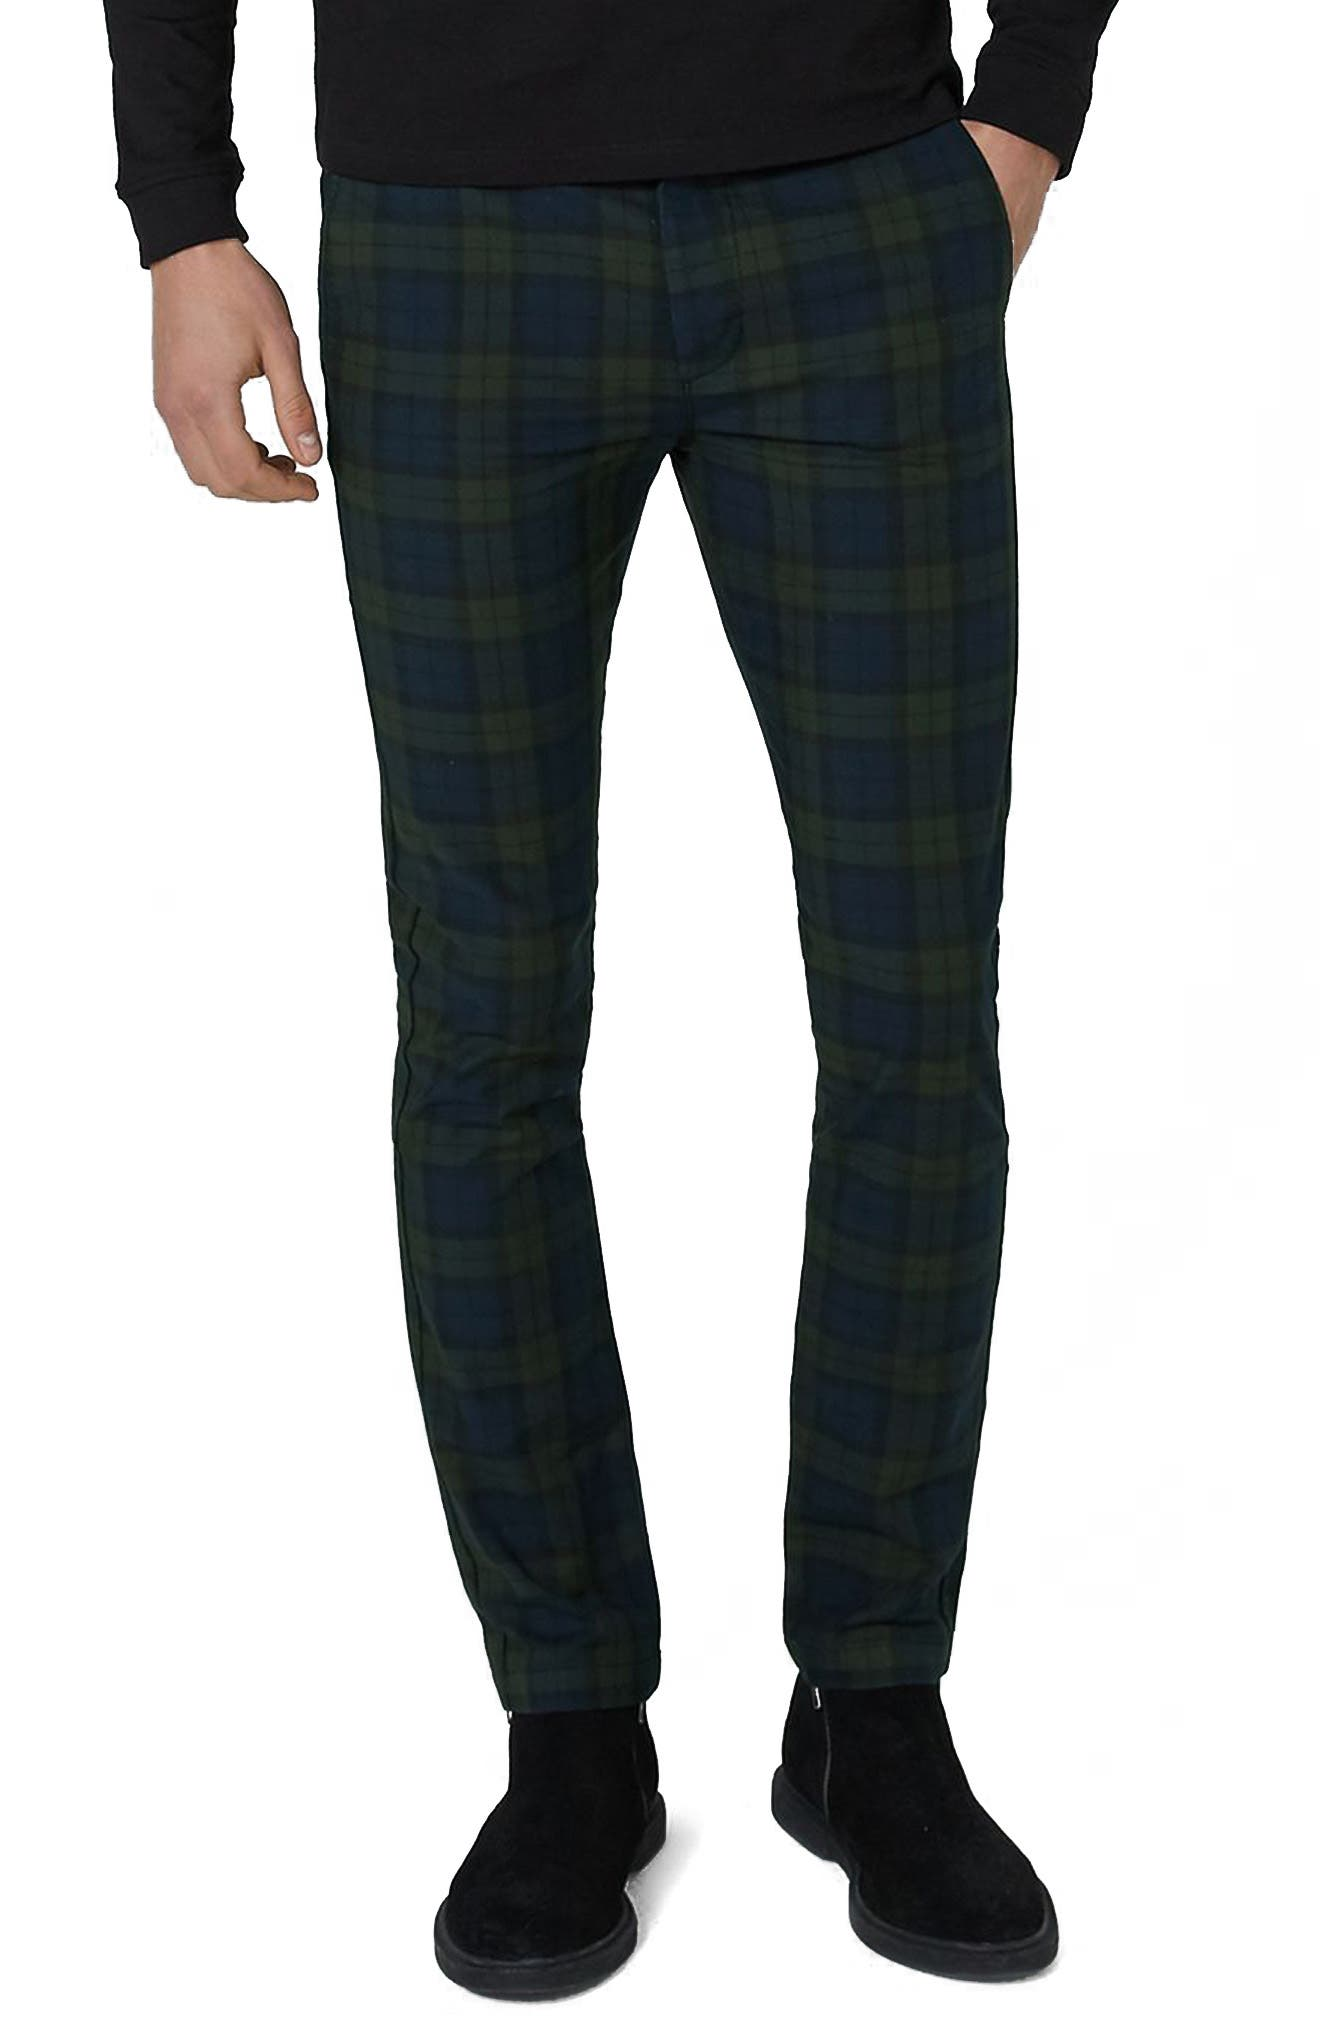 Black Watch Check Stretch Skinny Fit Trousers,                         Main,                         color, 340